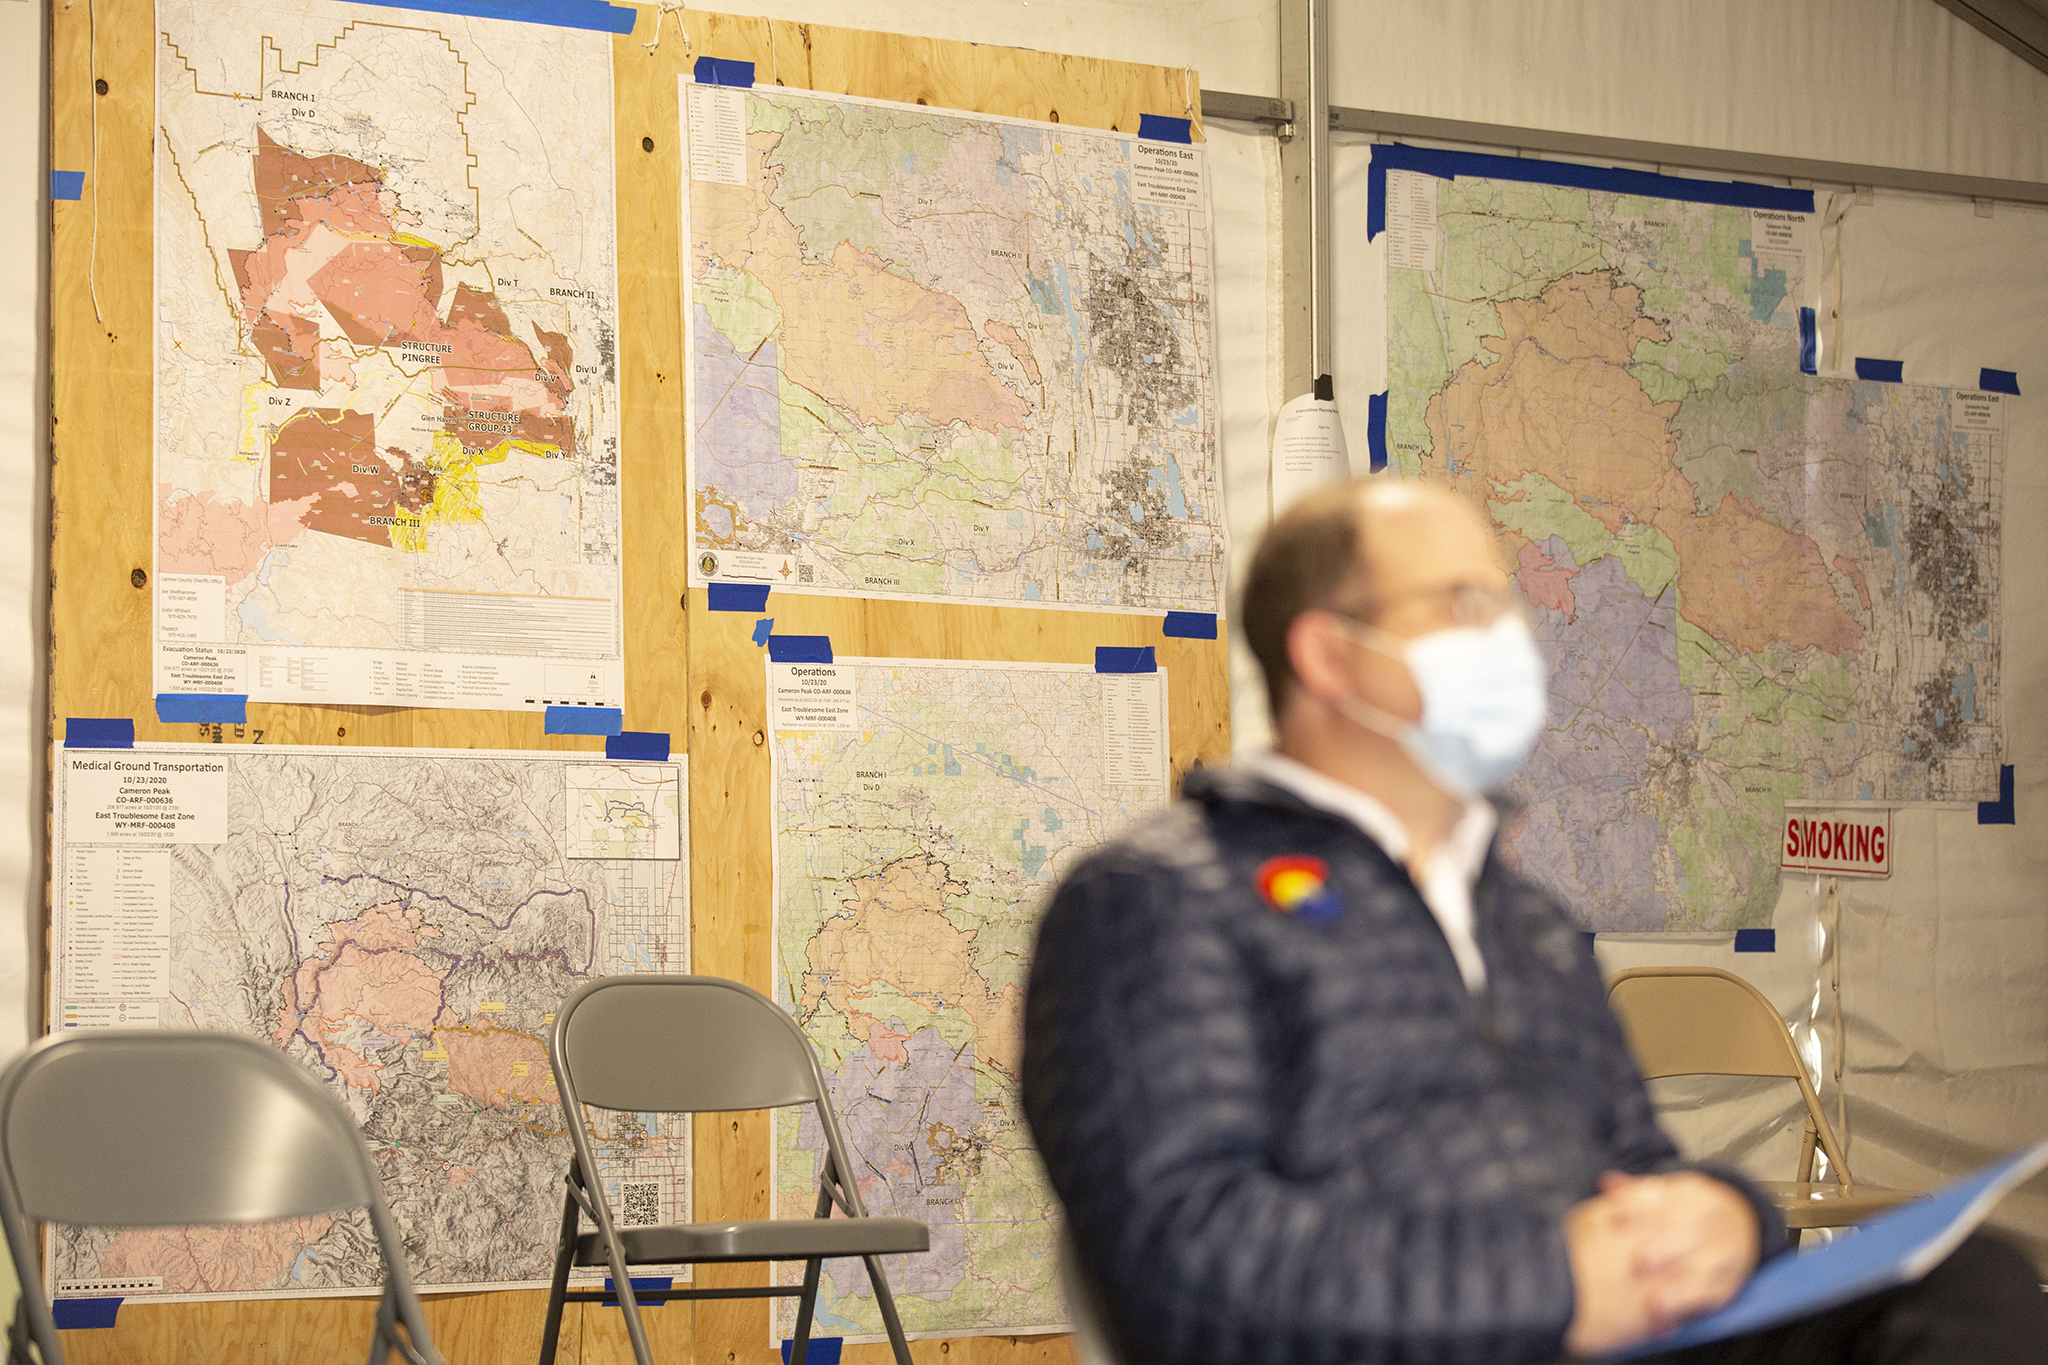 Gov. Jared Polis visits the Cameron Peak Fire's incident command post, just off I-25 in Loveland. Oct. 23, 2020.